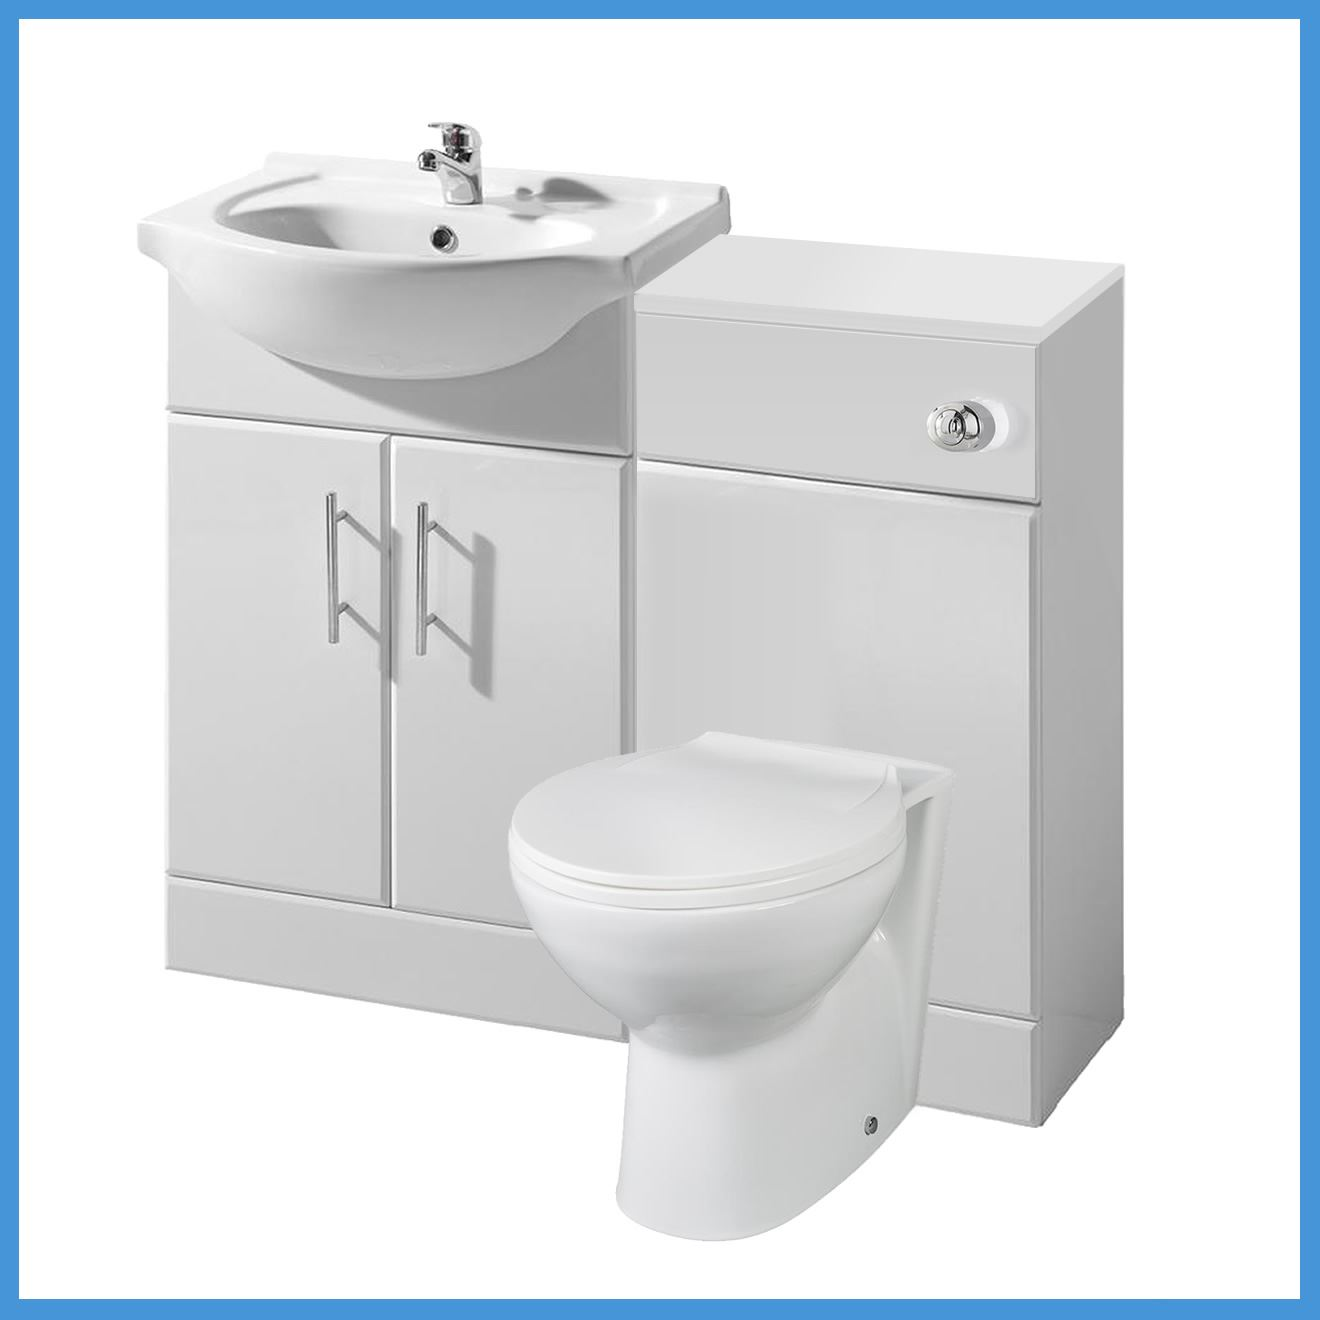 L shaped bathroom suite 1700 bath 550 vanity unit btw for Bathroom l shaped vanities